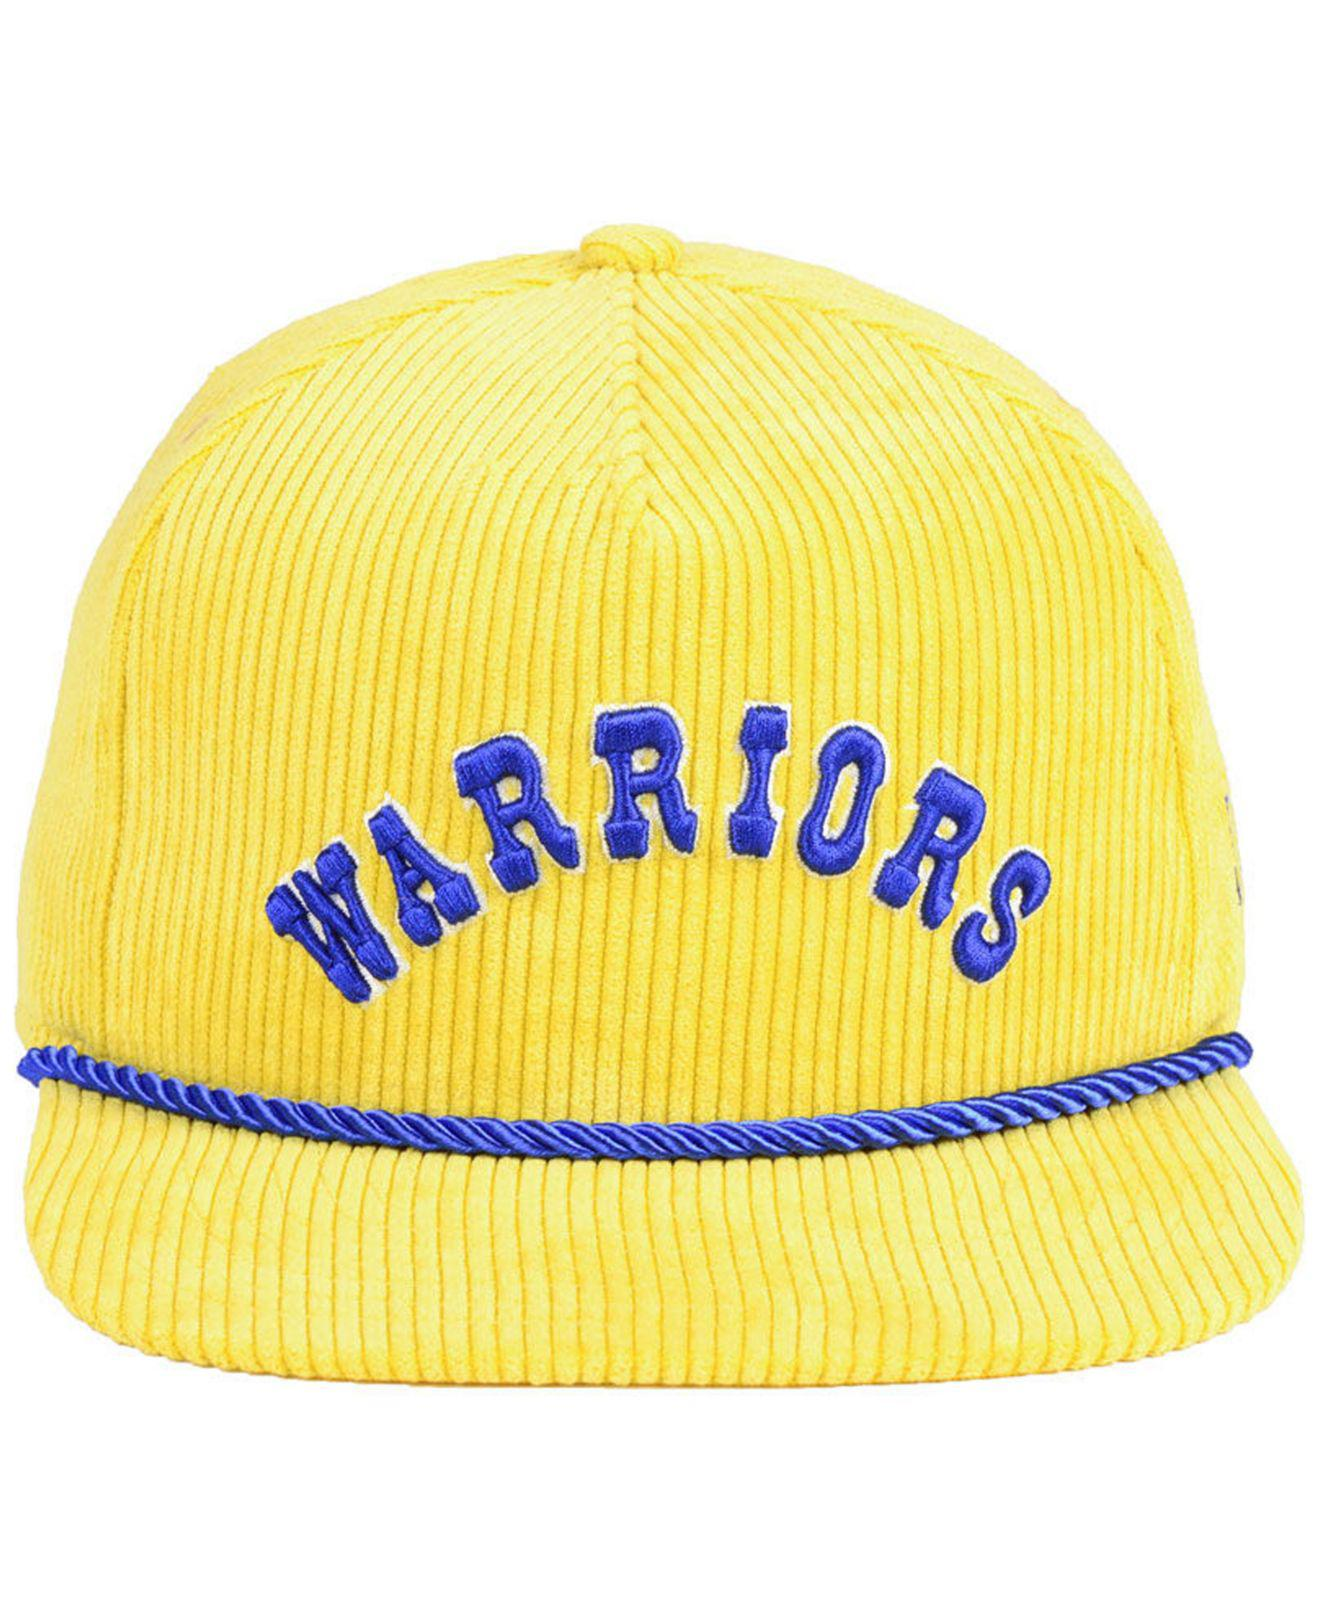 reputable site 2bf8c 6a6d7 Lyst - KTZ Golden State Warriors Hardwood Classic Nights Cords 9fifty  Snapback Cap in Yellow for Men